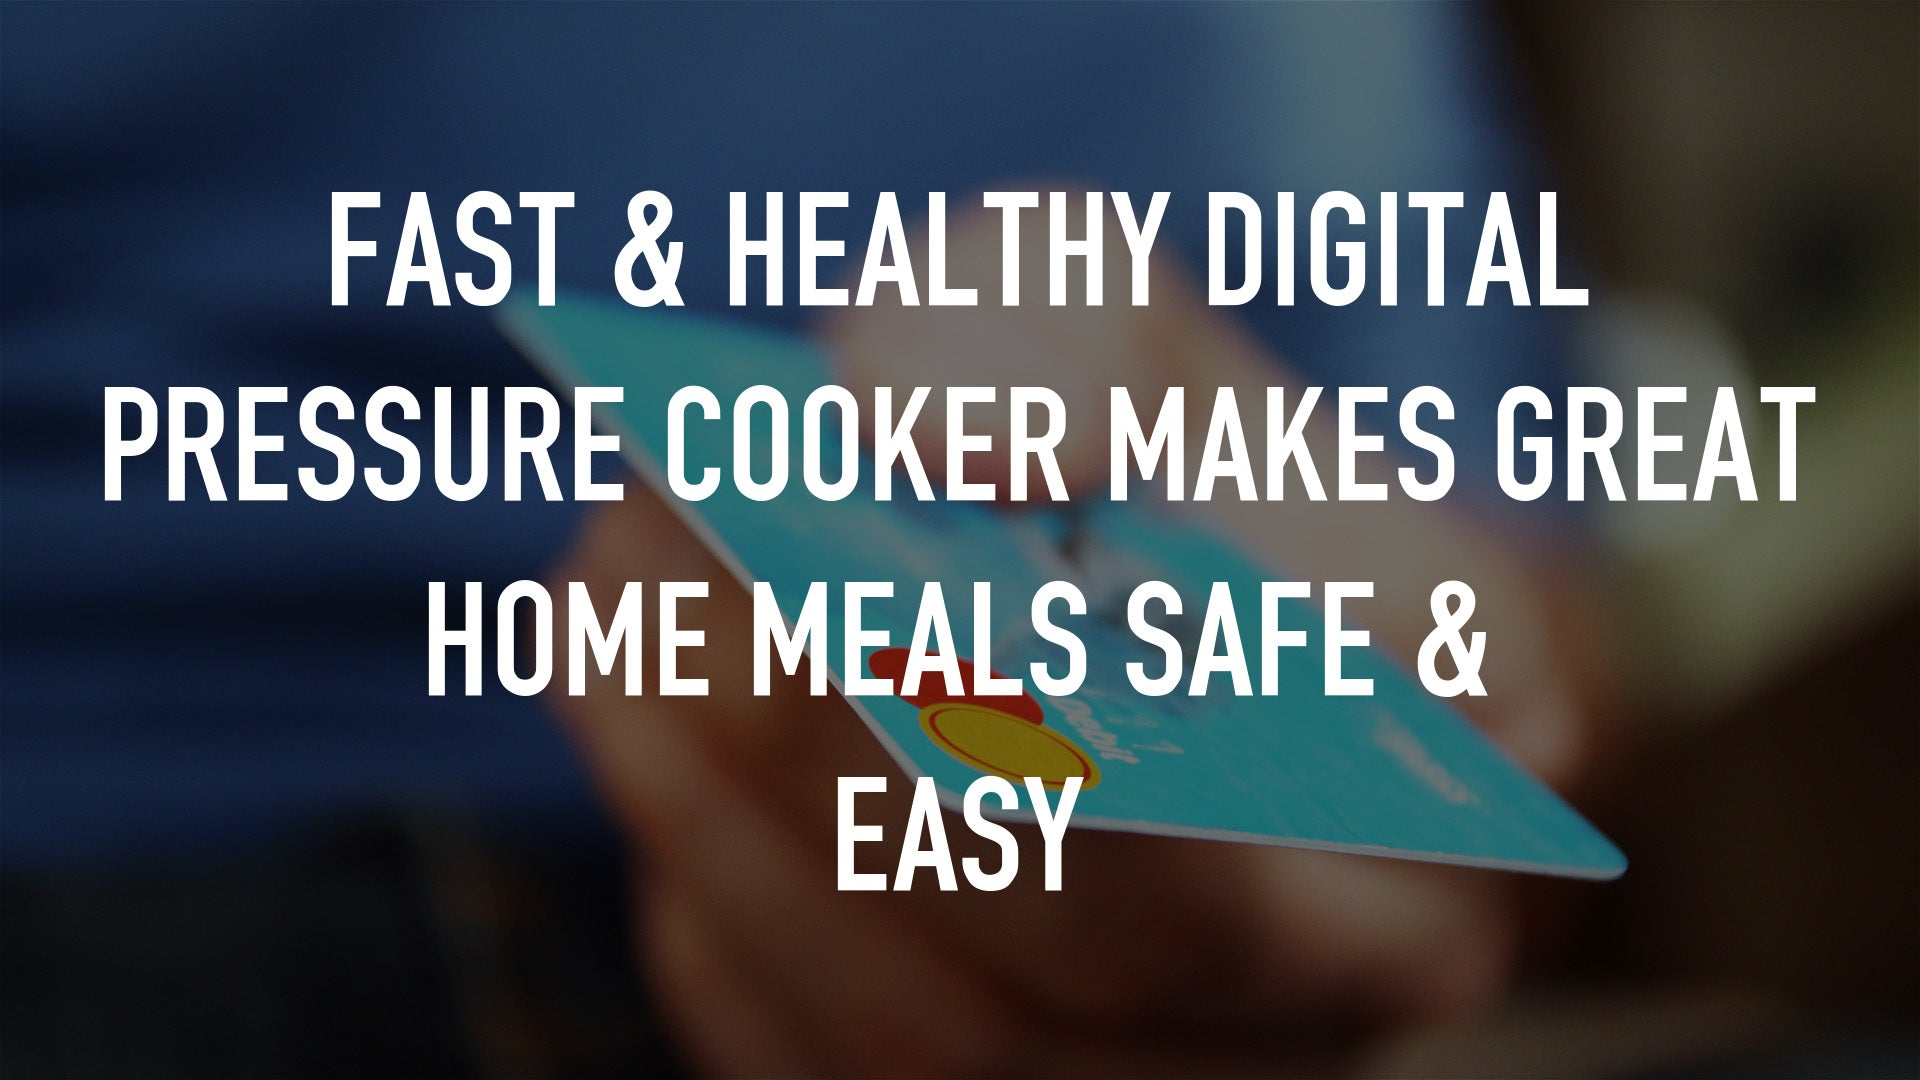 Fast & Healthy Digital Pressure Cooker Makes Great Home Meals Safe & Easy